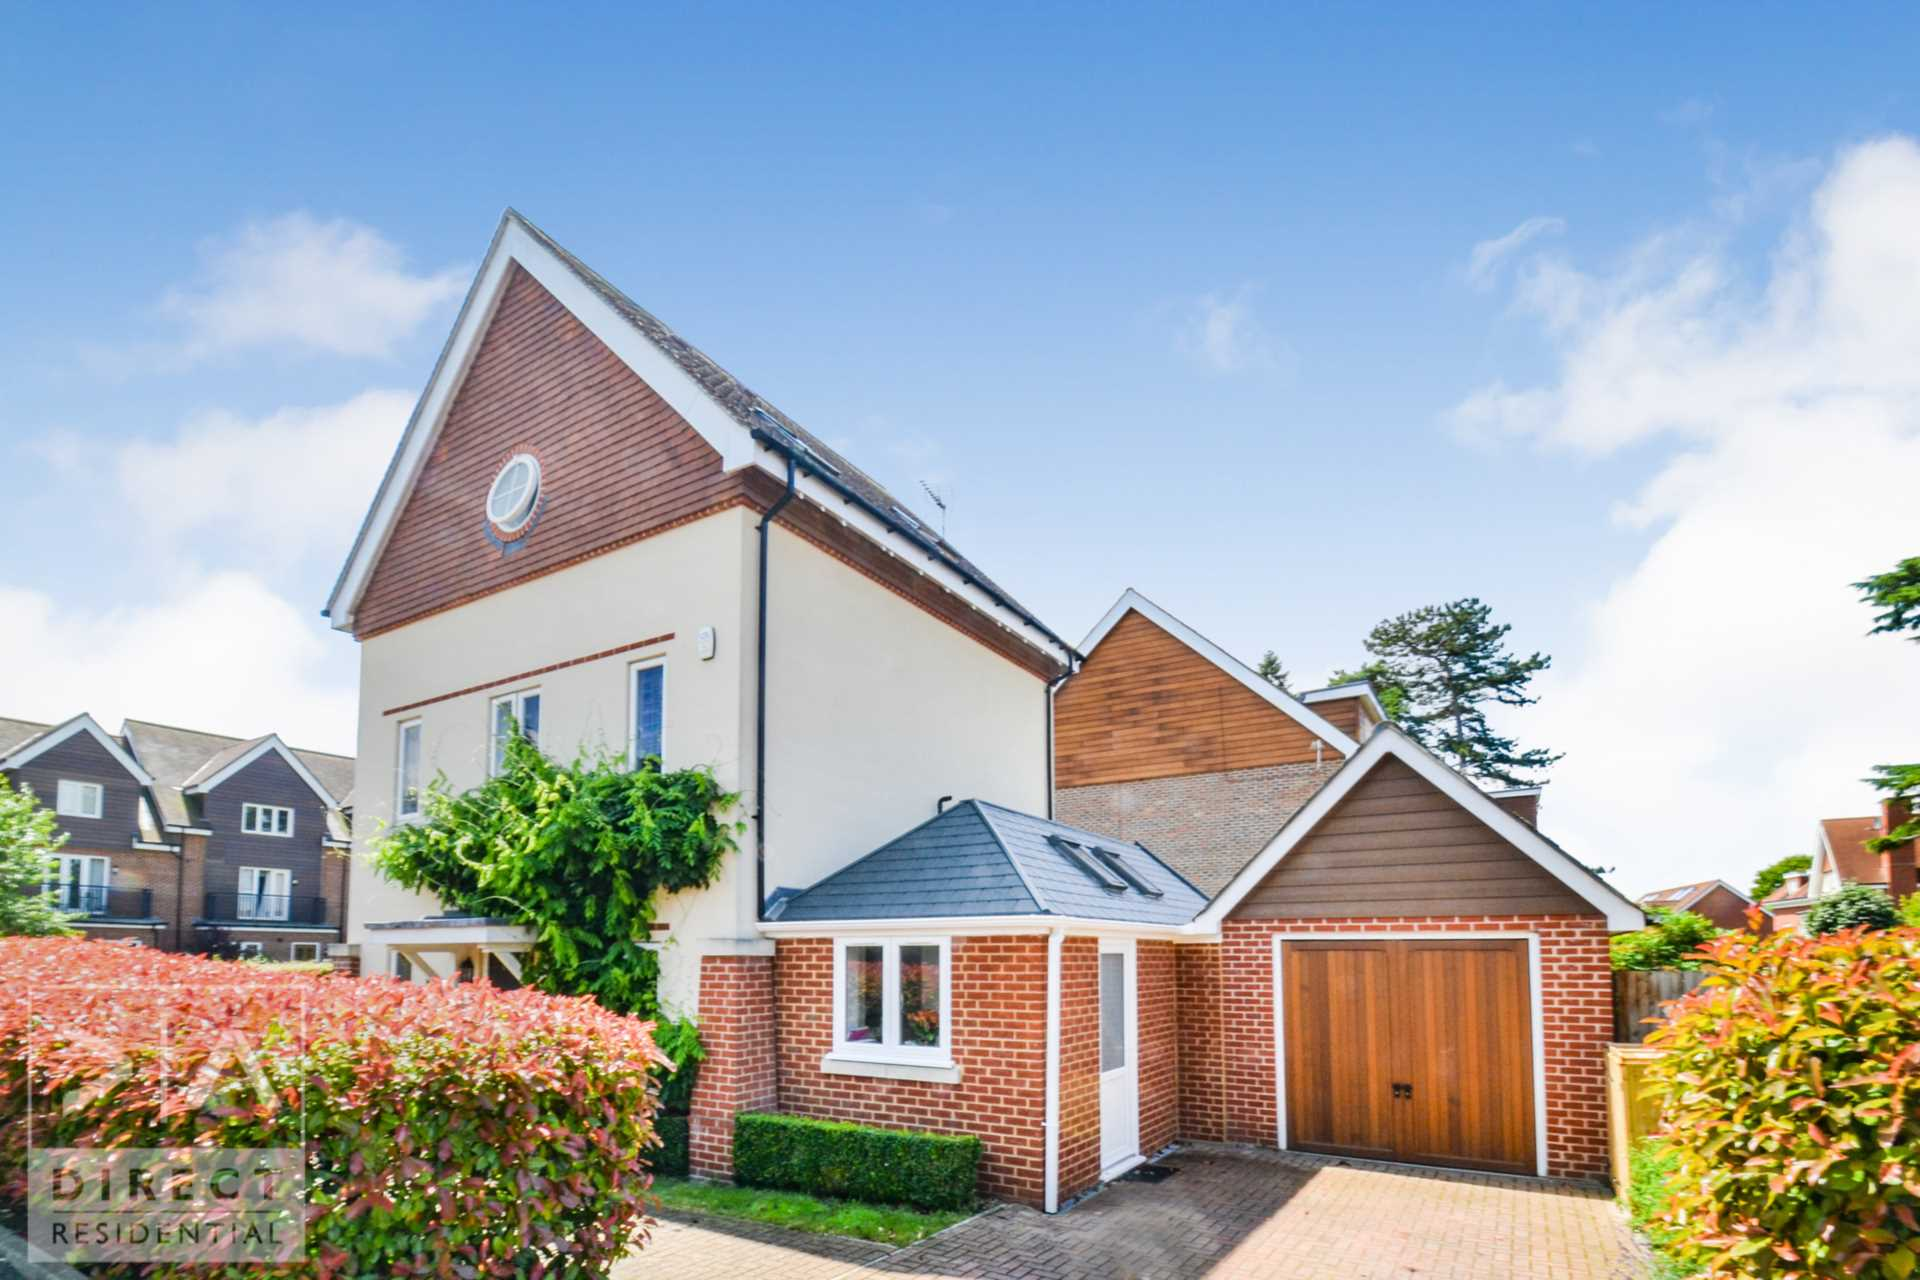 Mulberry Way, Ashtead, KT21 2FE, Image 1